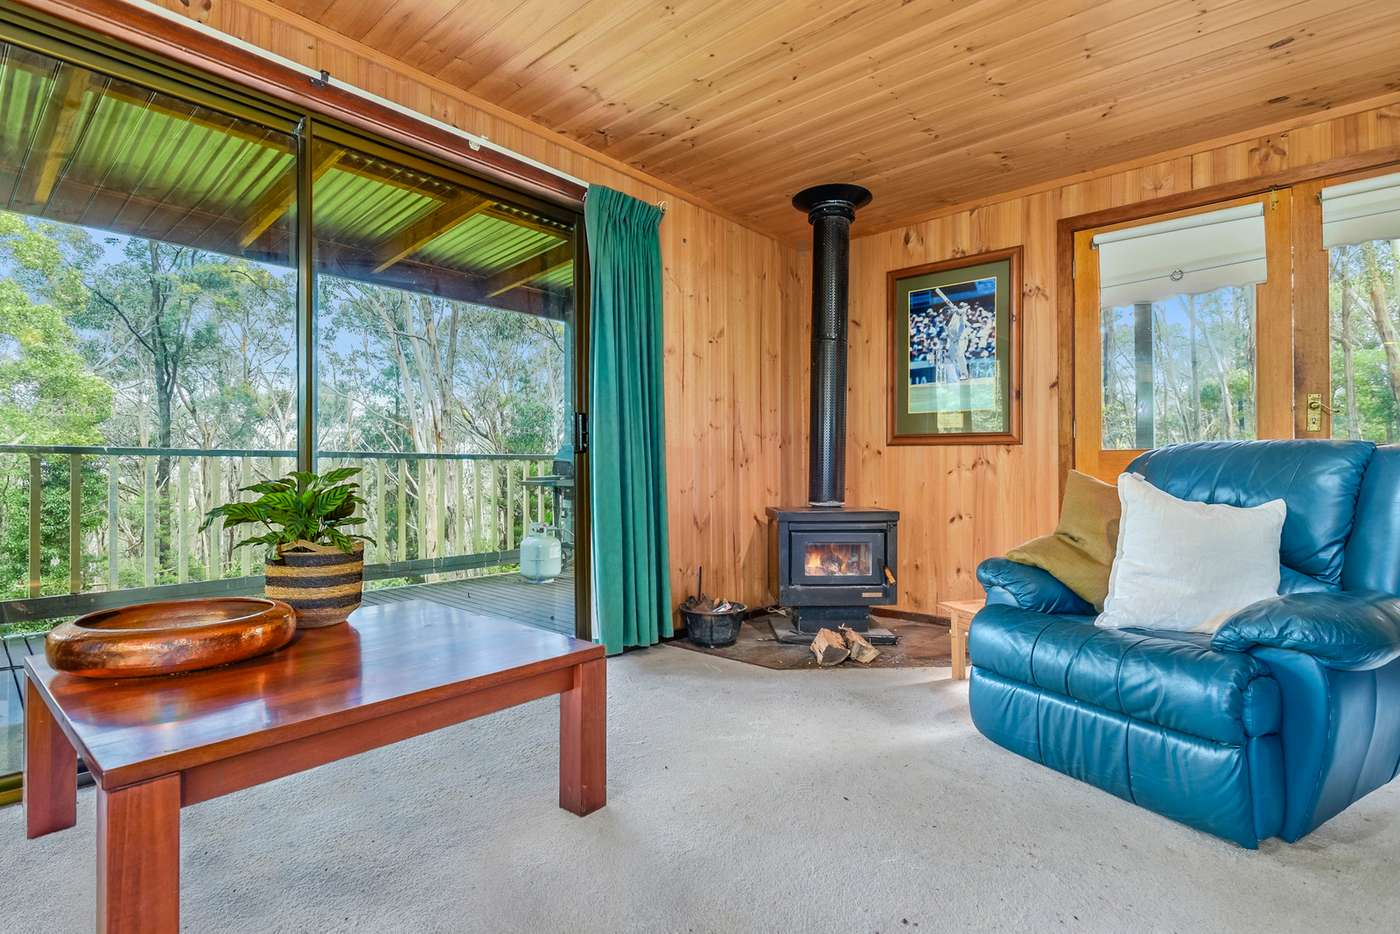 Fifth view of Homely house listing, 33 Blanche Parade, Mount Macedon VIC 3441